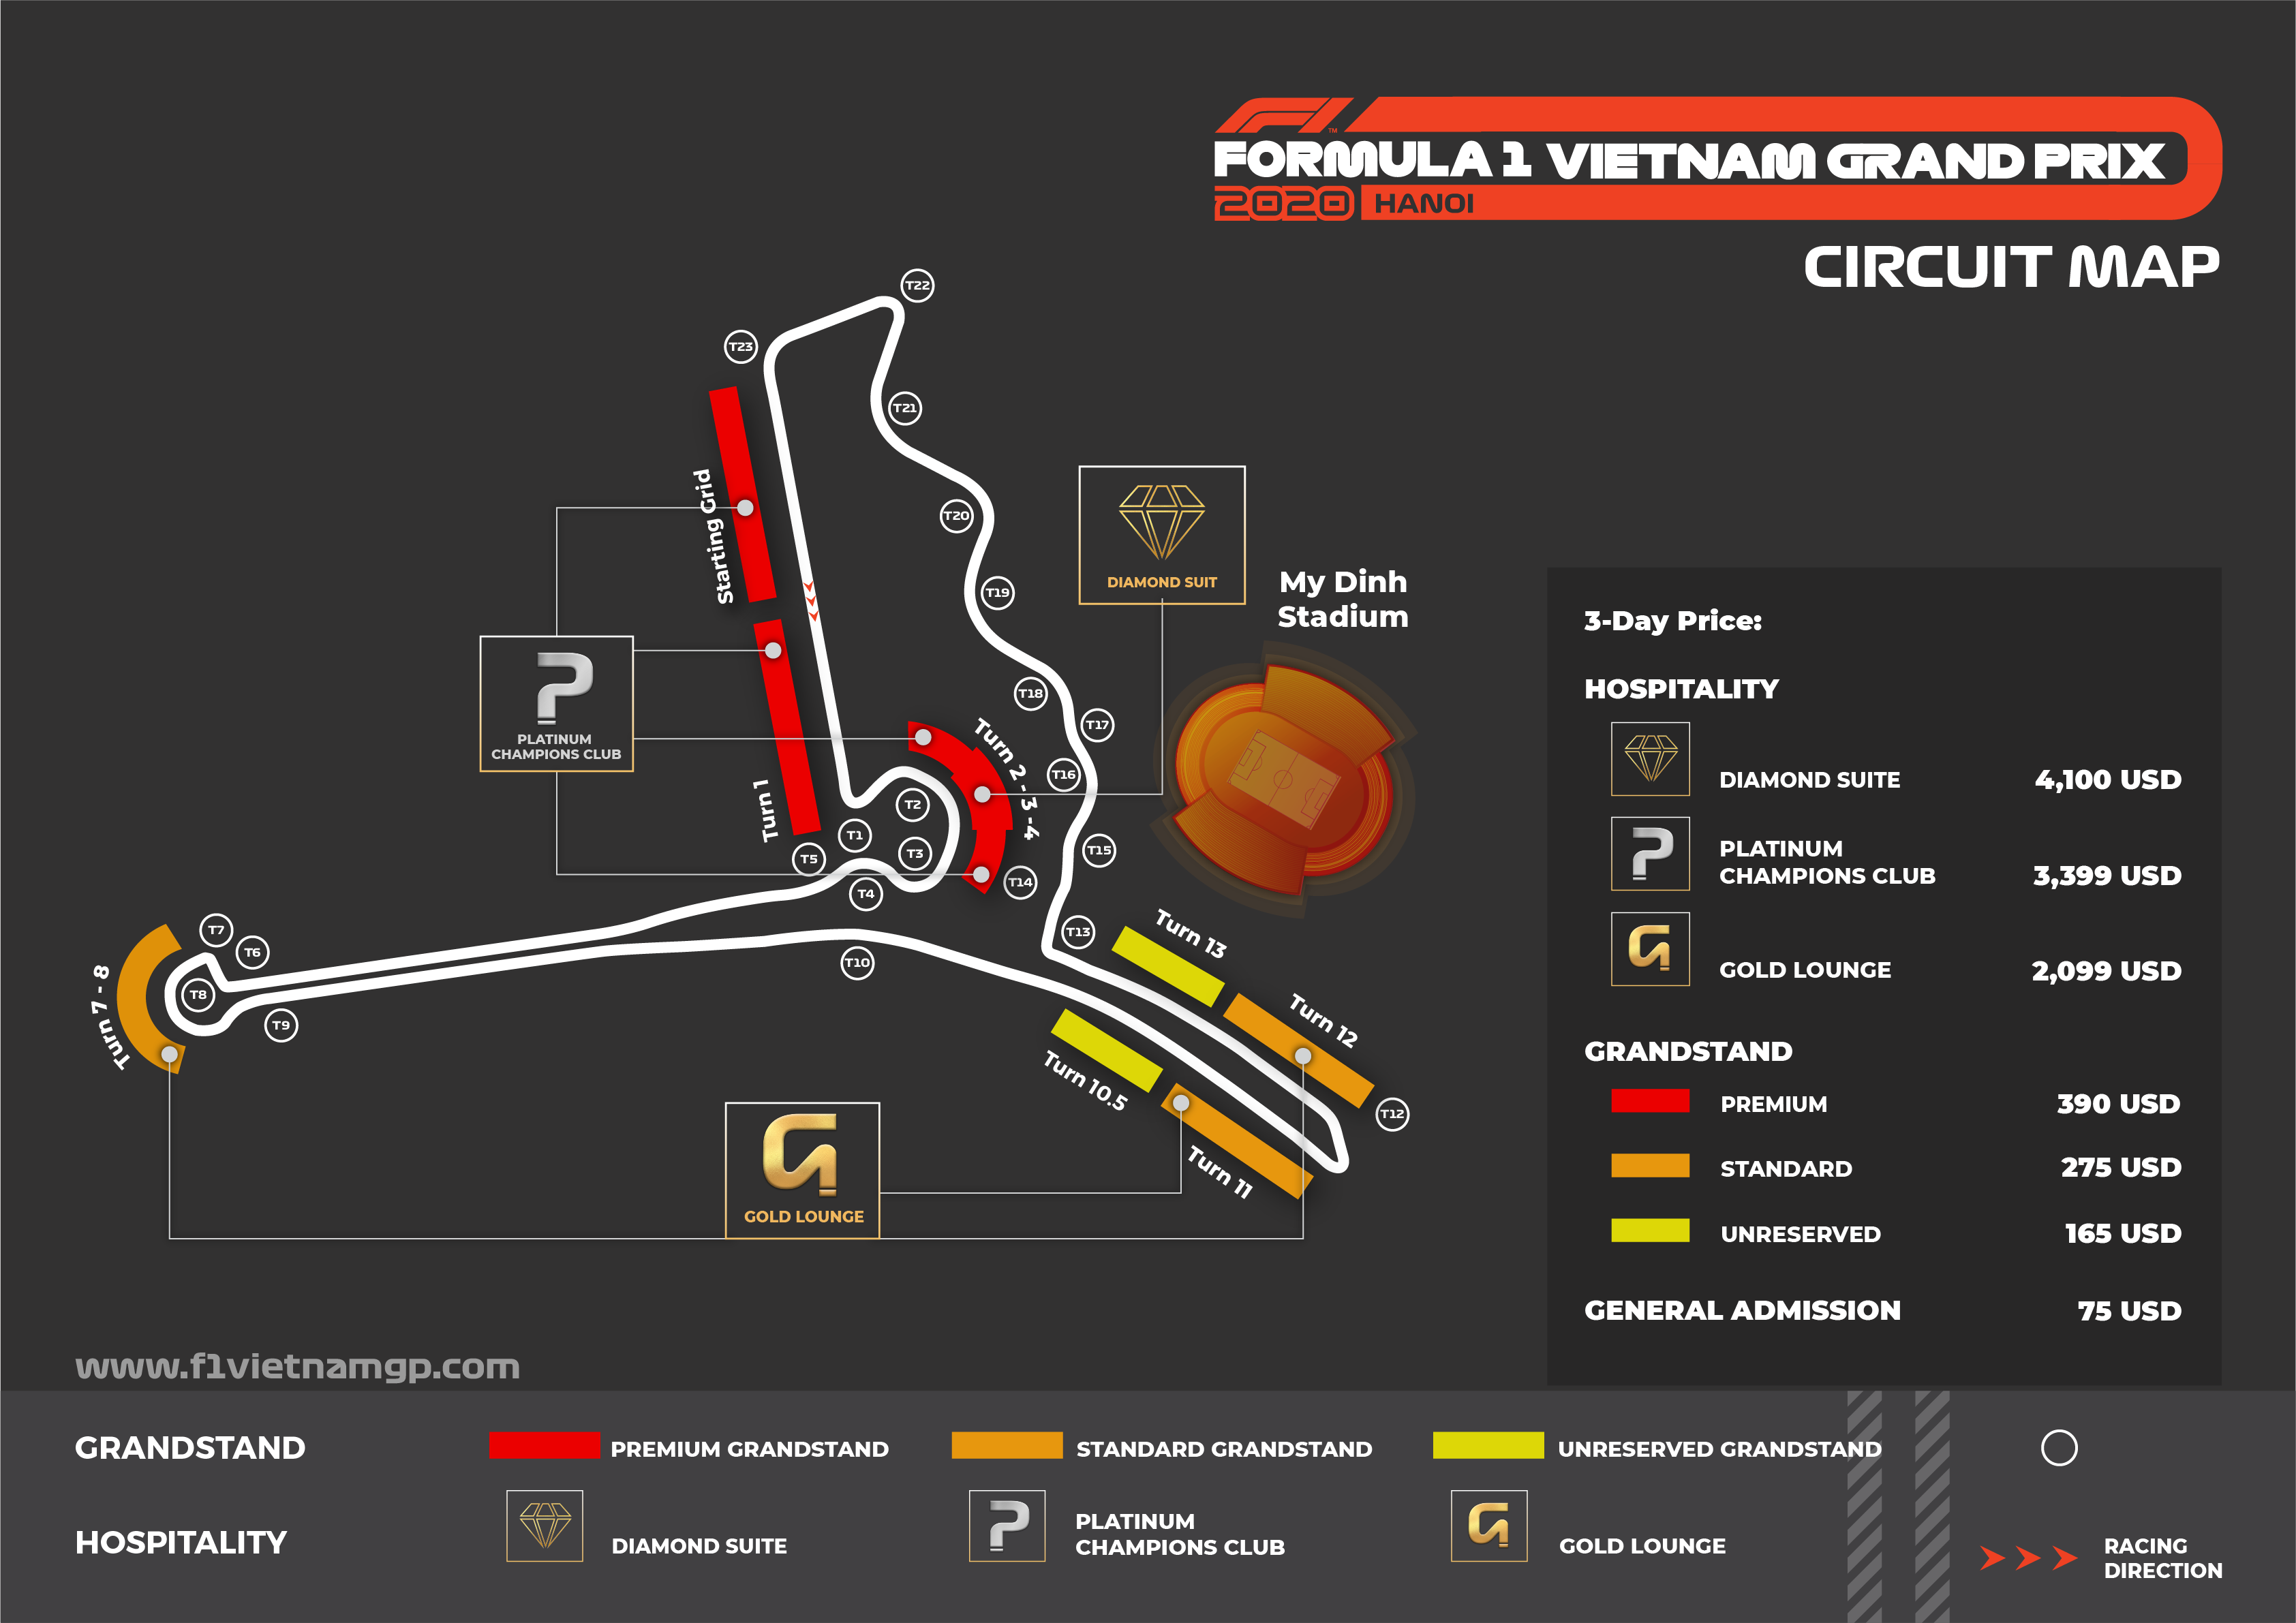 F1 Circuit Map, Vietnam Grand Prix Ticket